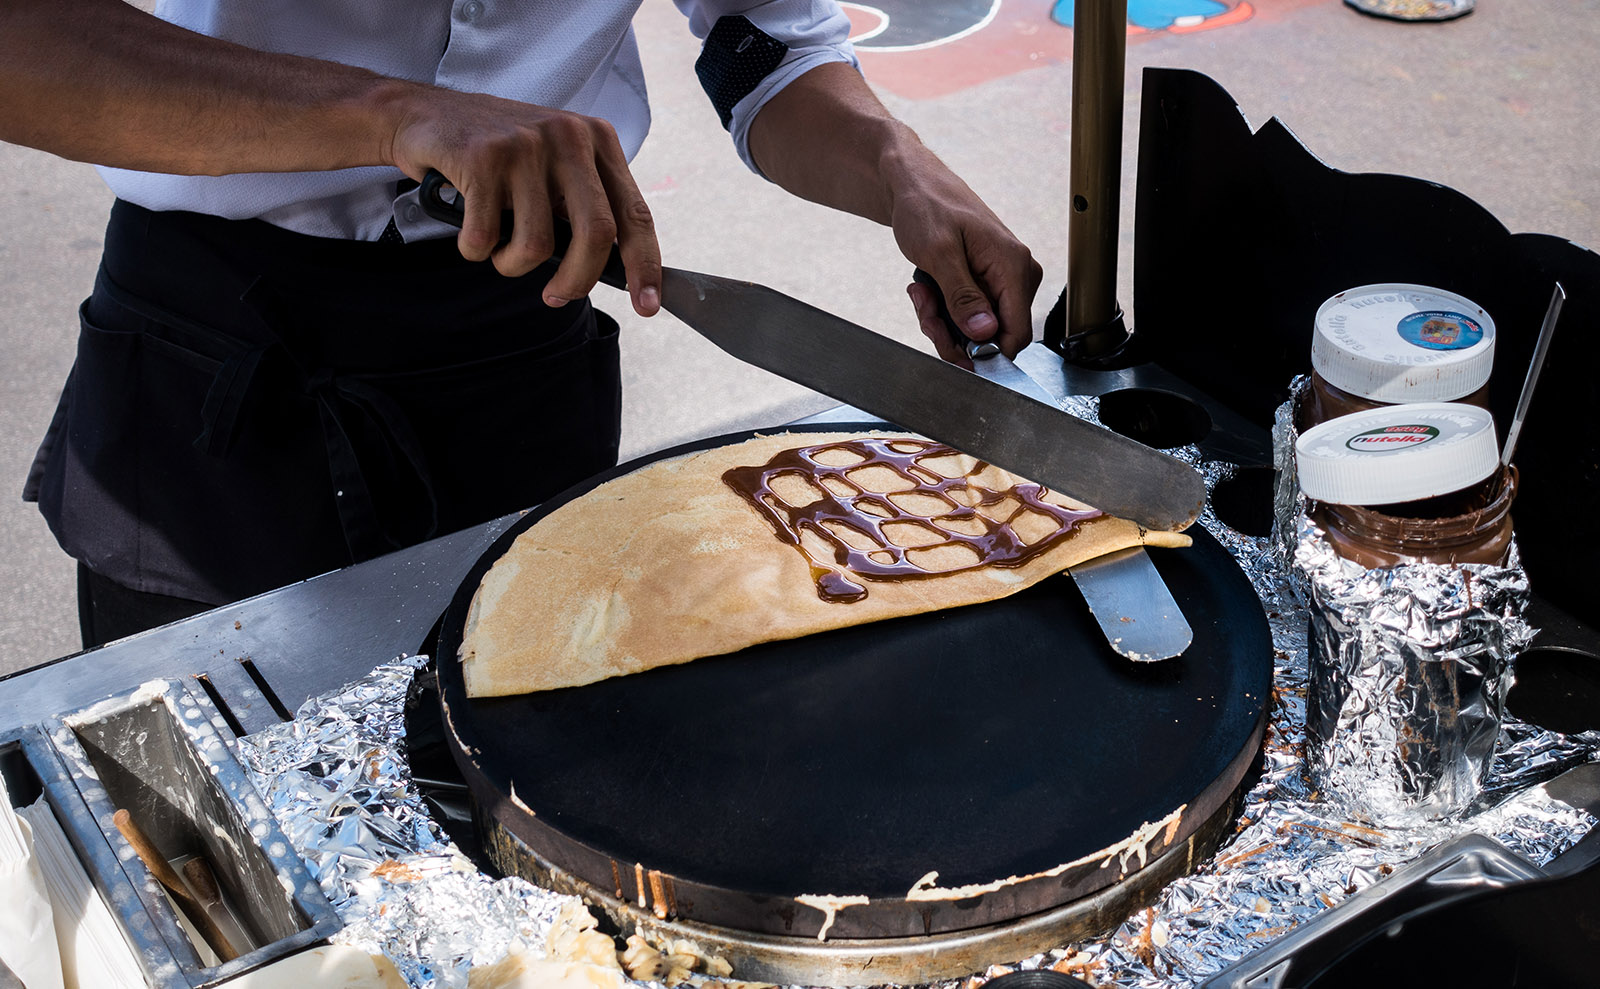 crepe being made on a street cart